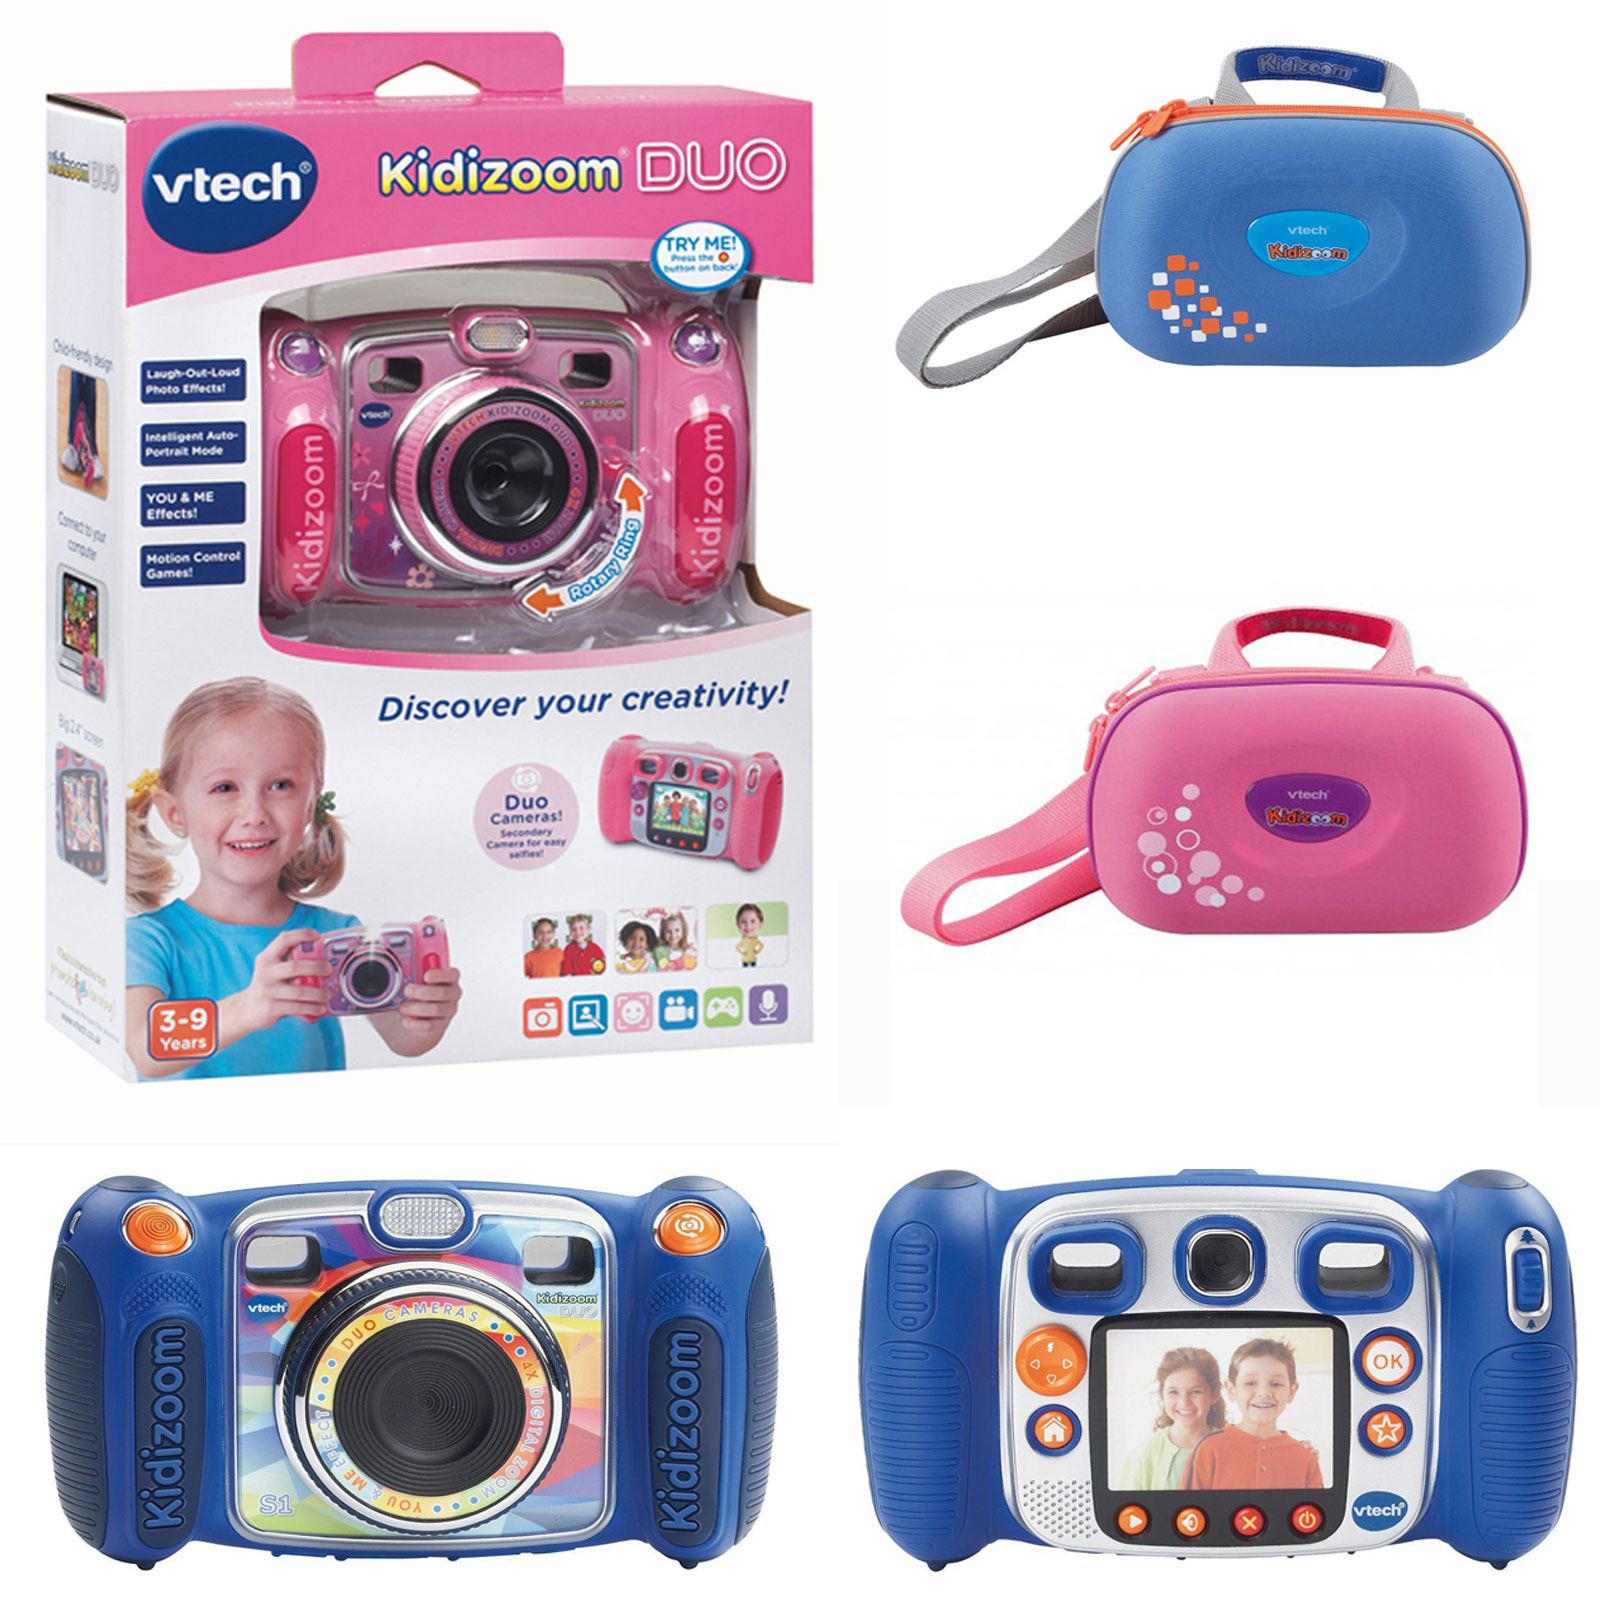 Vtech Kidizoom Duo Kids Digital Cameras In Blue And Pink